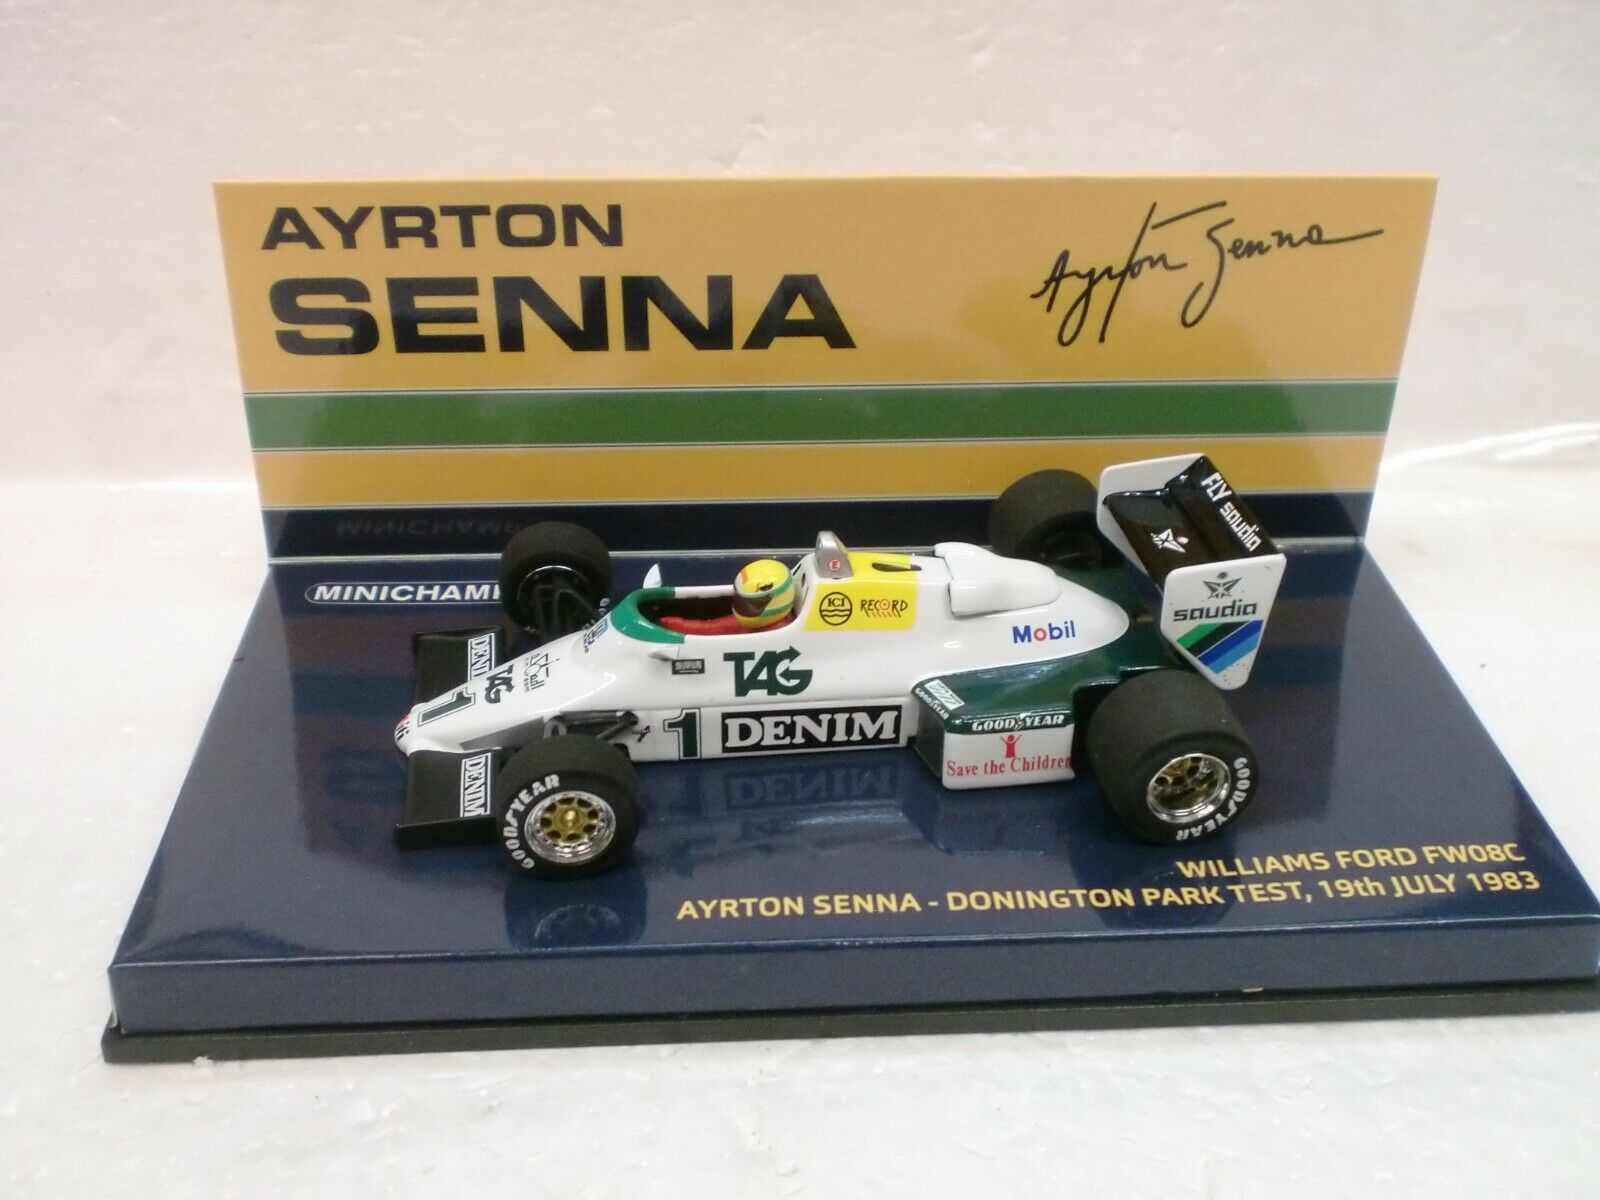 MINICHAMPS 1 43 - WILLIAMS FORD FW08C AYRTON SENNA 1983 - 540 834301